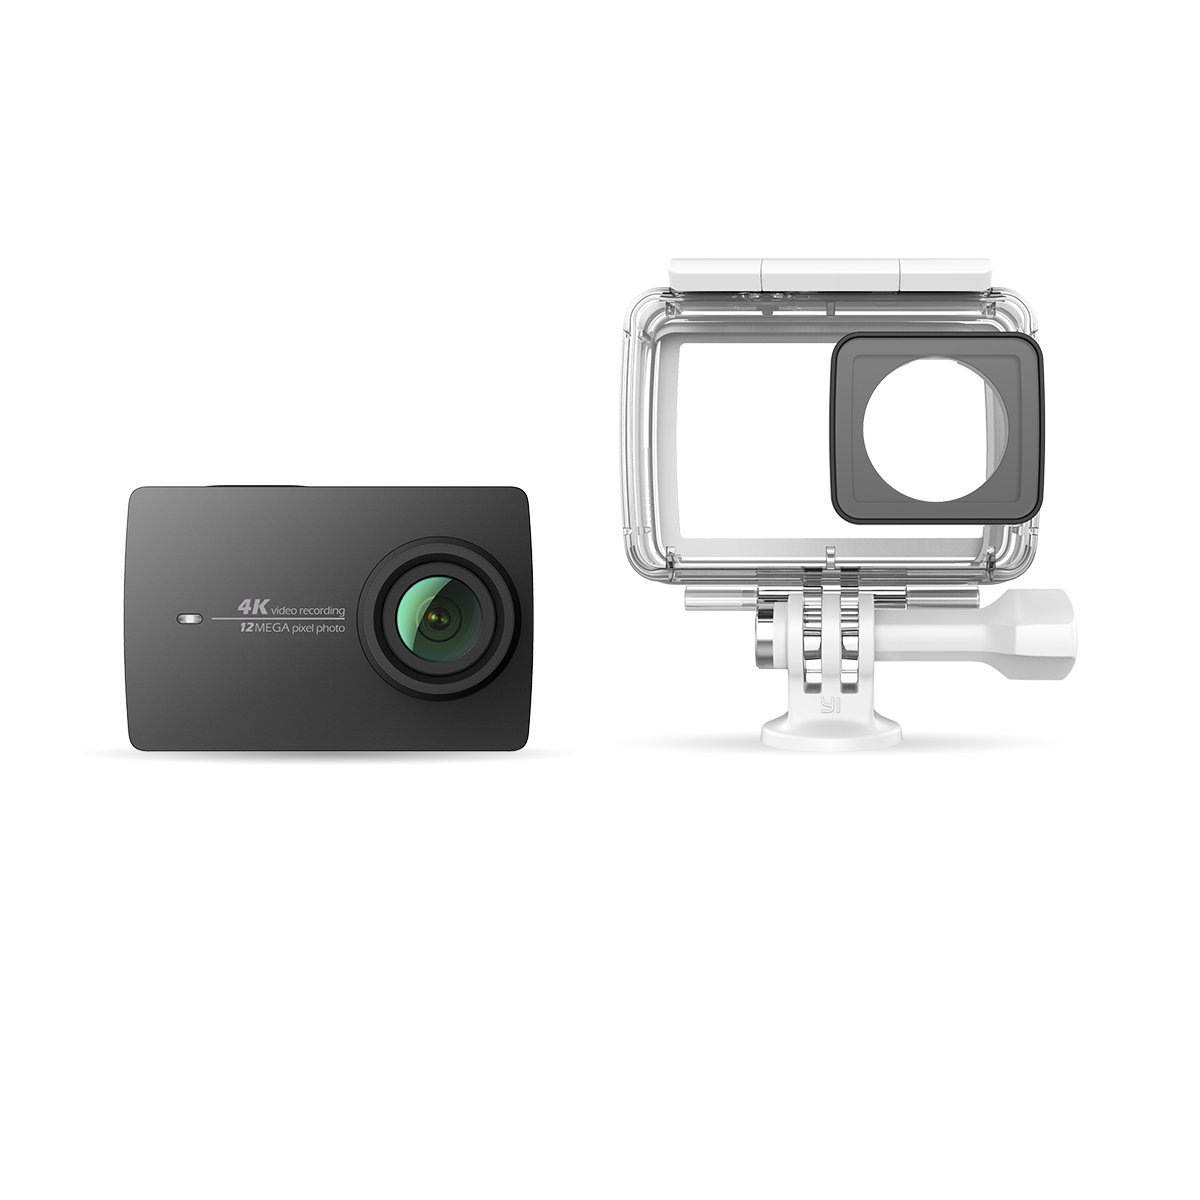 YI 4K Action Camera with Waterproof Case 32G Memory Card Included Night Black by YI